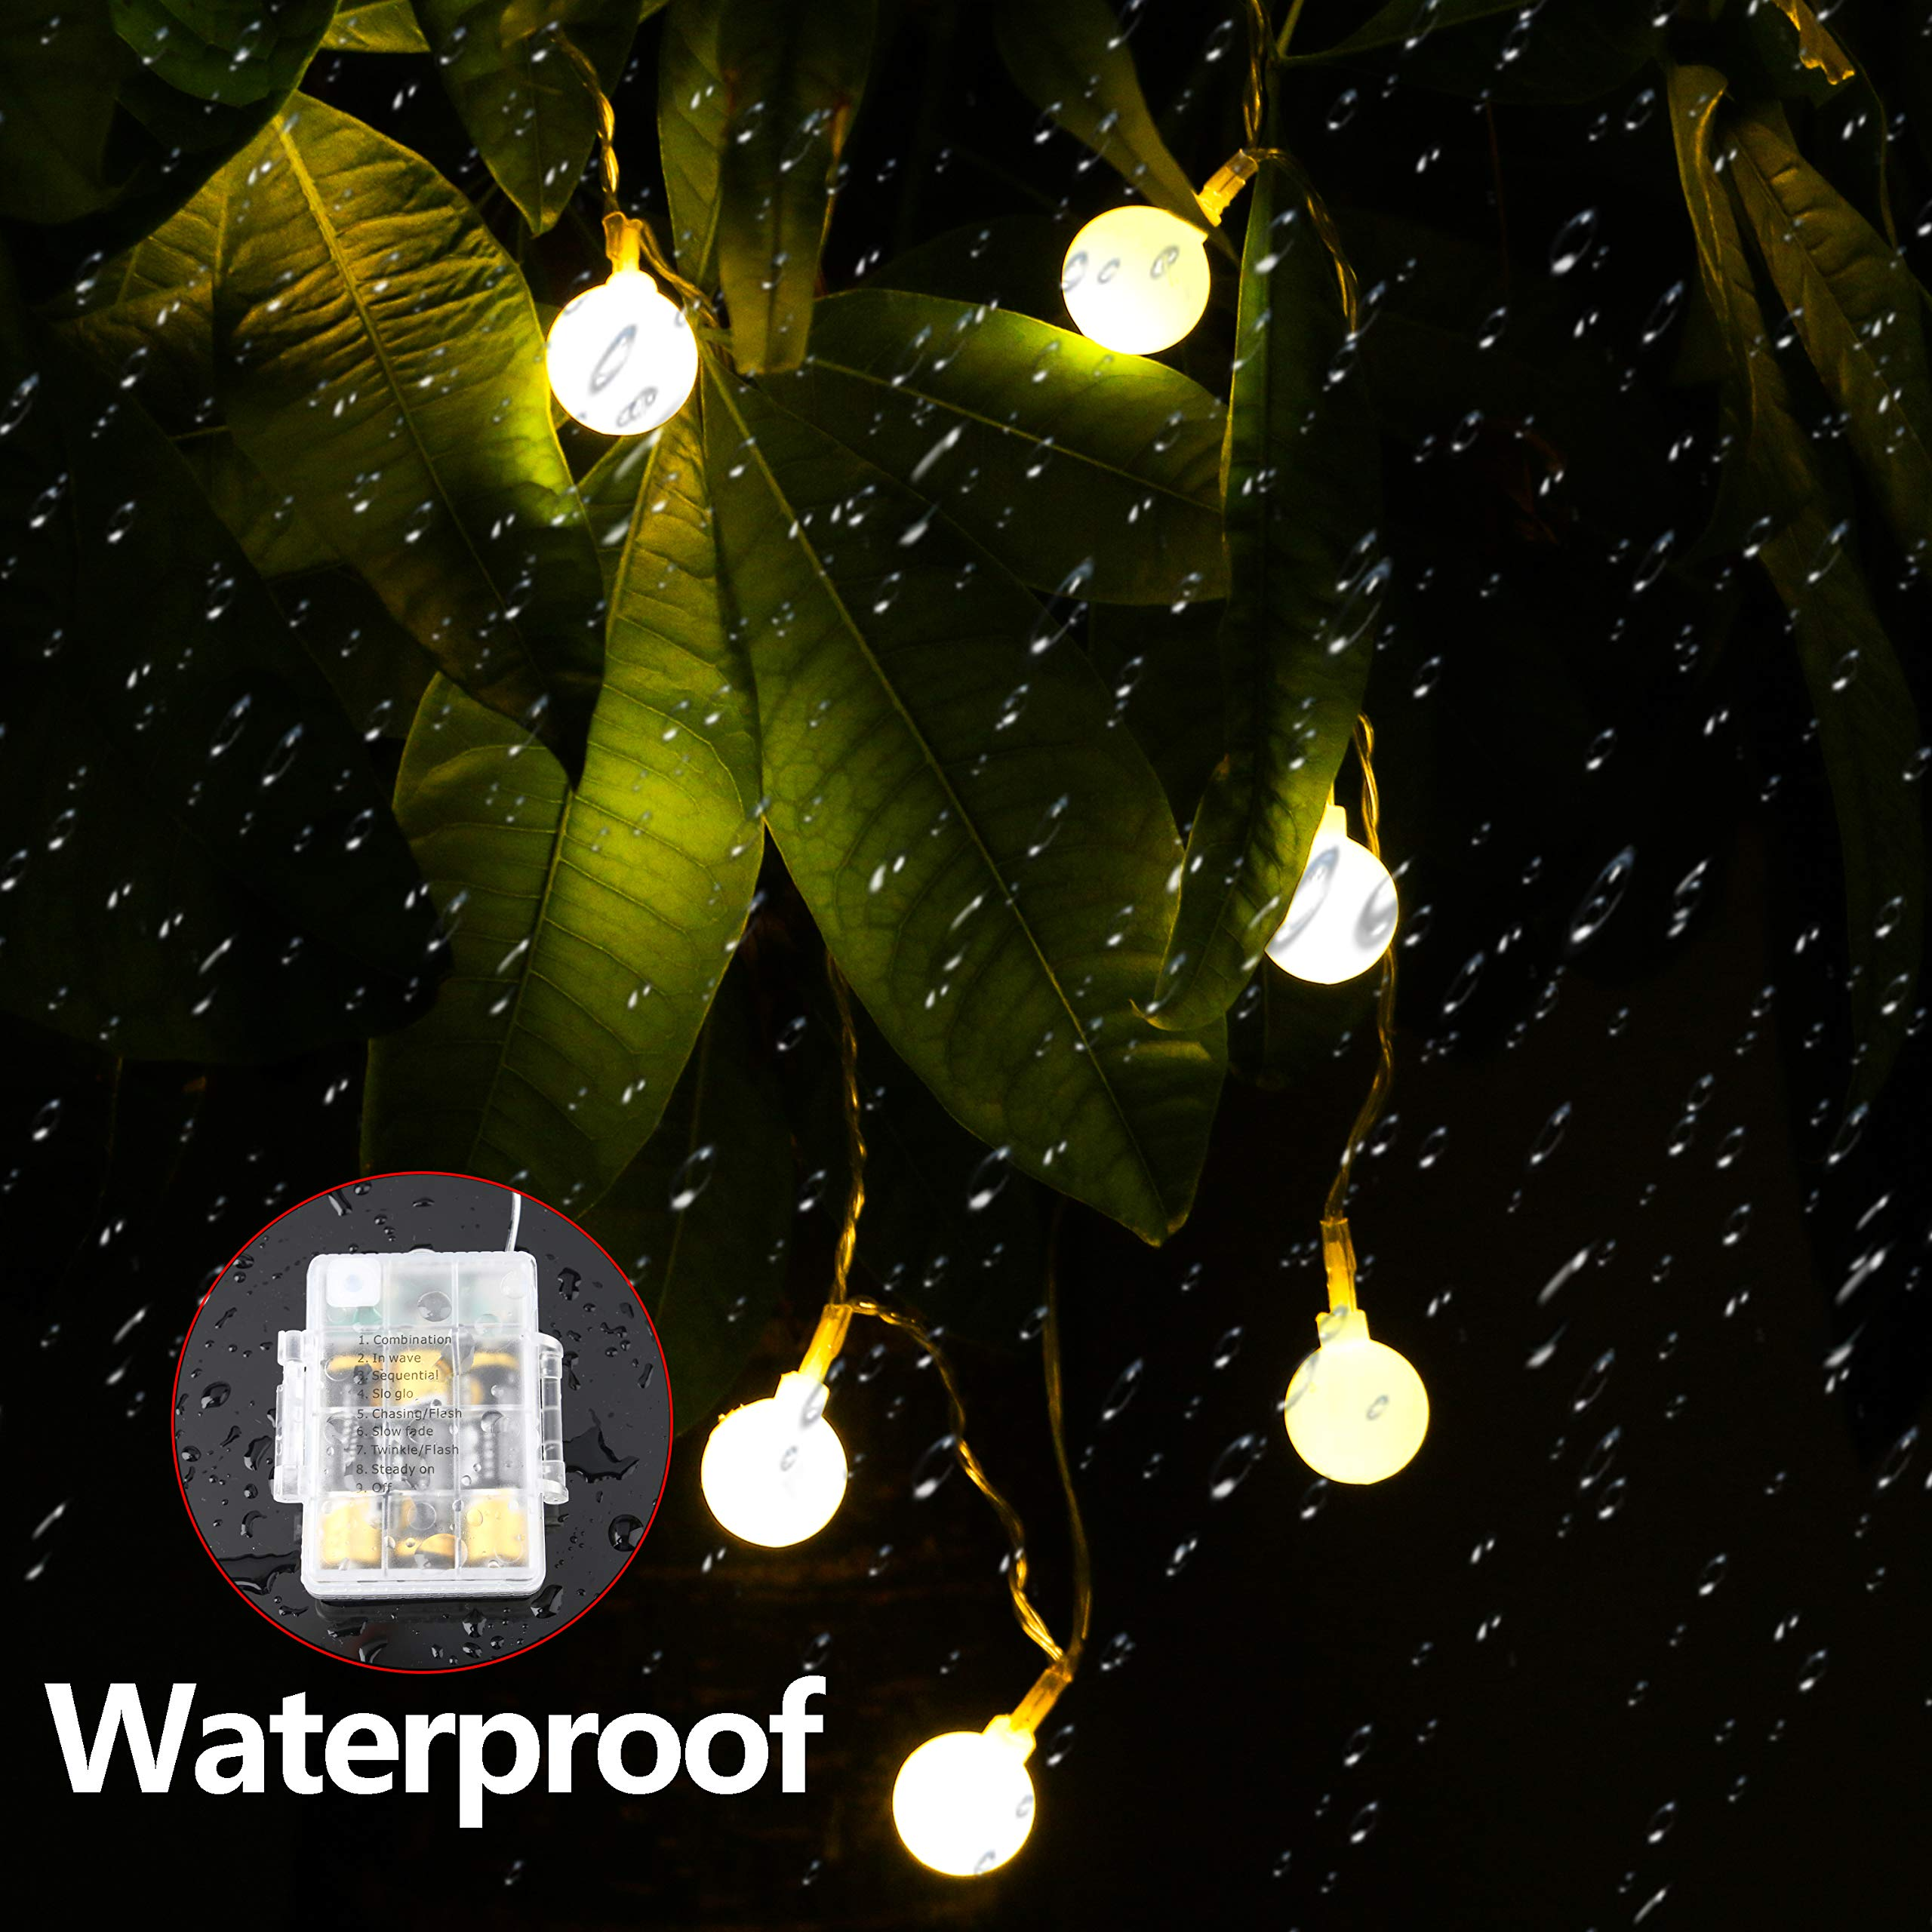 Battery Fairy Lights - Outdoor Fairy Lights [Remote & Timer] 16.4FT/5M 50Leds 8 Modes Waterproof Battery Powered Fairy Lights for Decorations Christmas